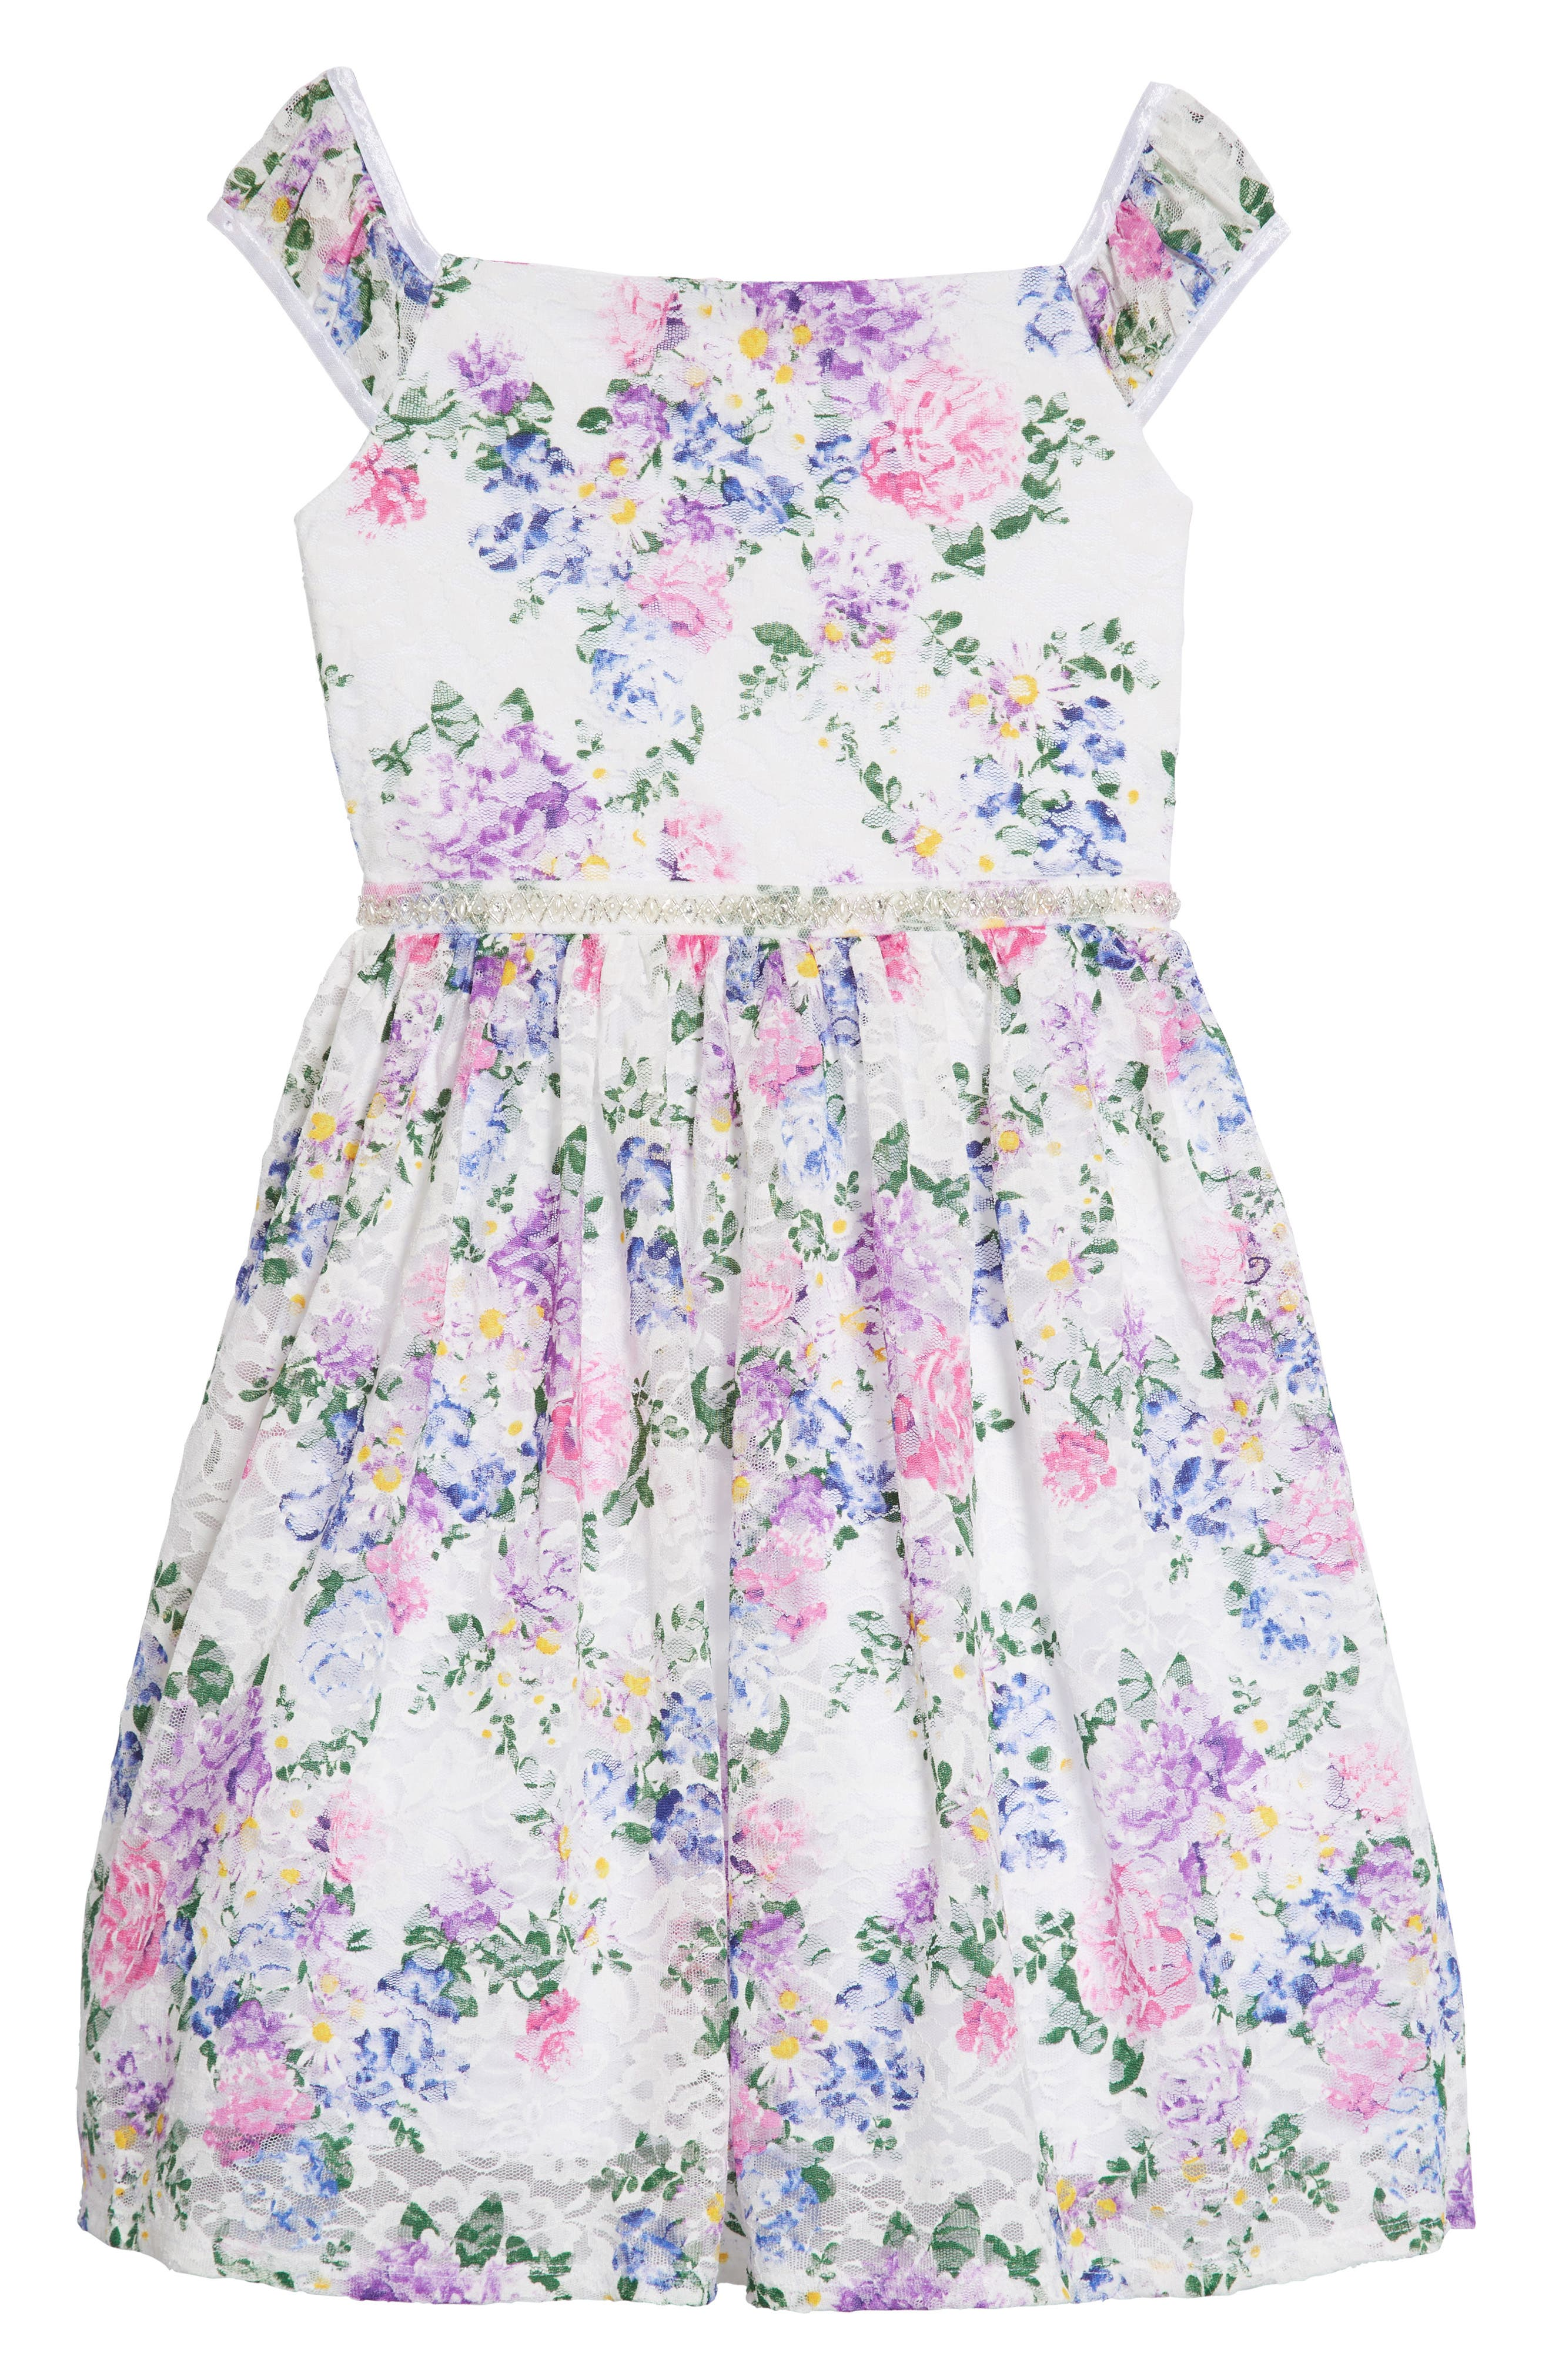 LOVE, NICKIE LEW Floral Lace Dress, Main, color, 106